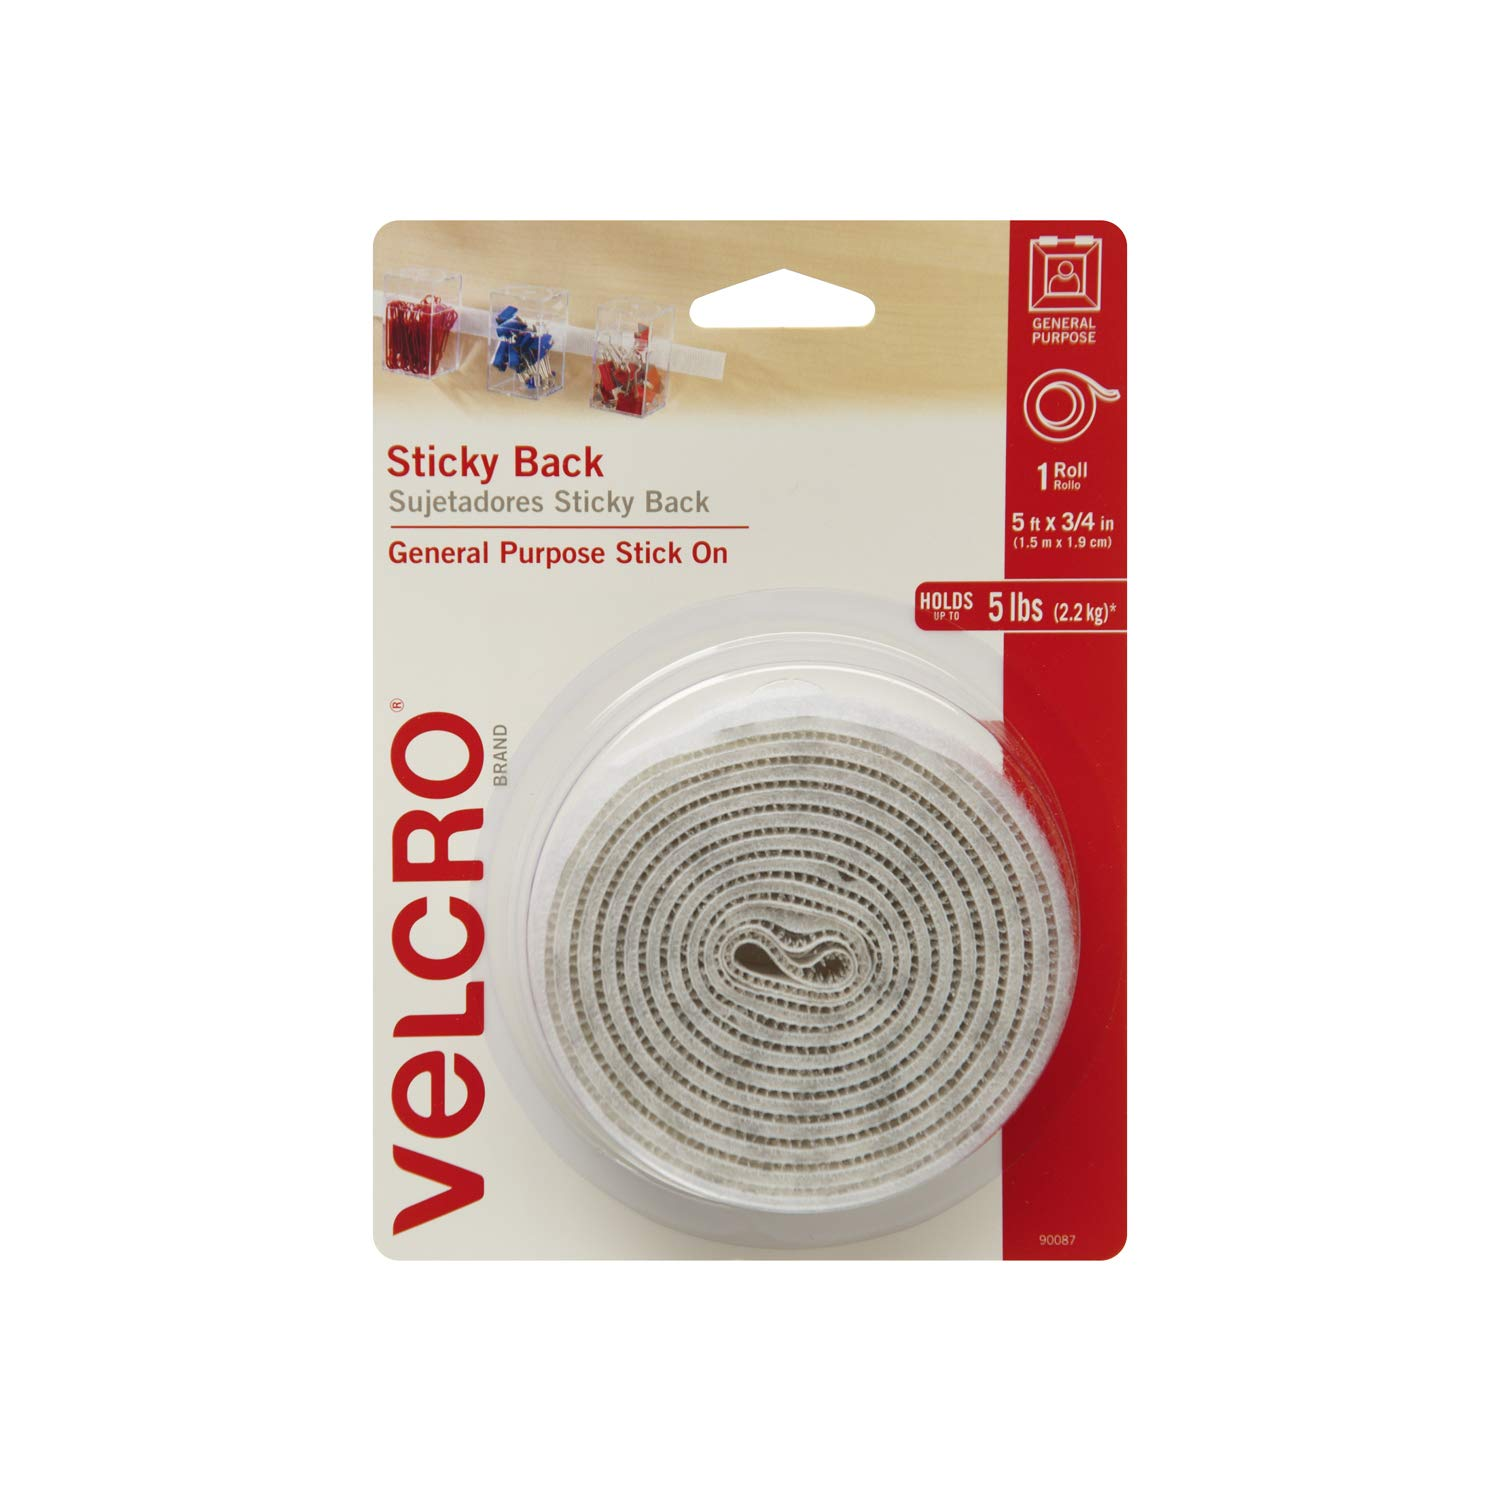 VELCRO Brand - Sticky Back Hook and Loop Fasteners| Perfect for Home or Office |5ft x 3/4in Roll | White